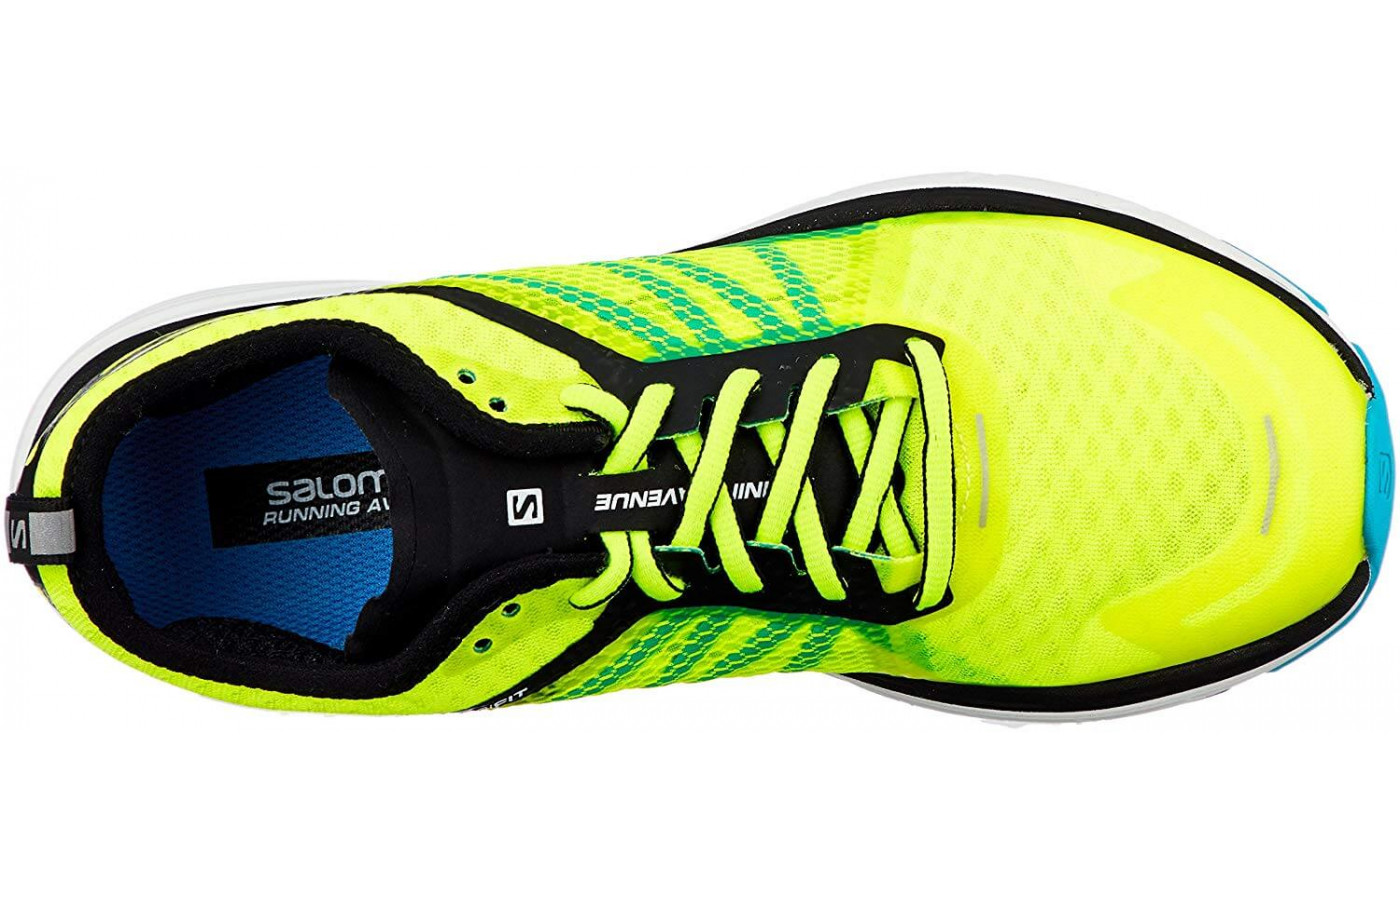 Salomon Sonic RA Max top